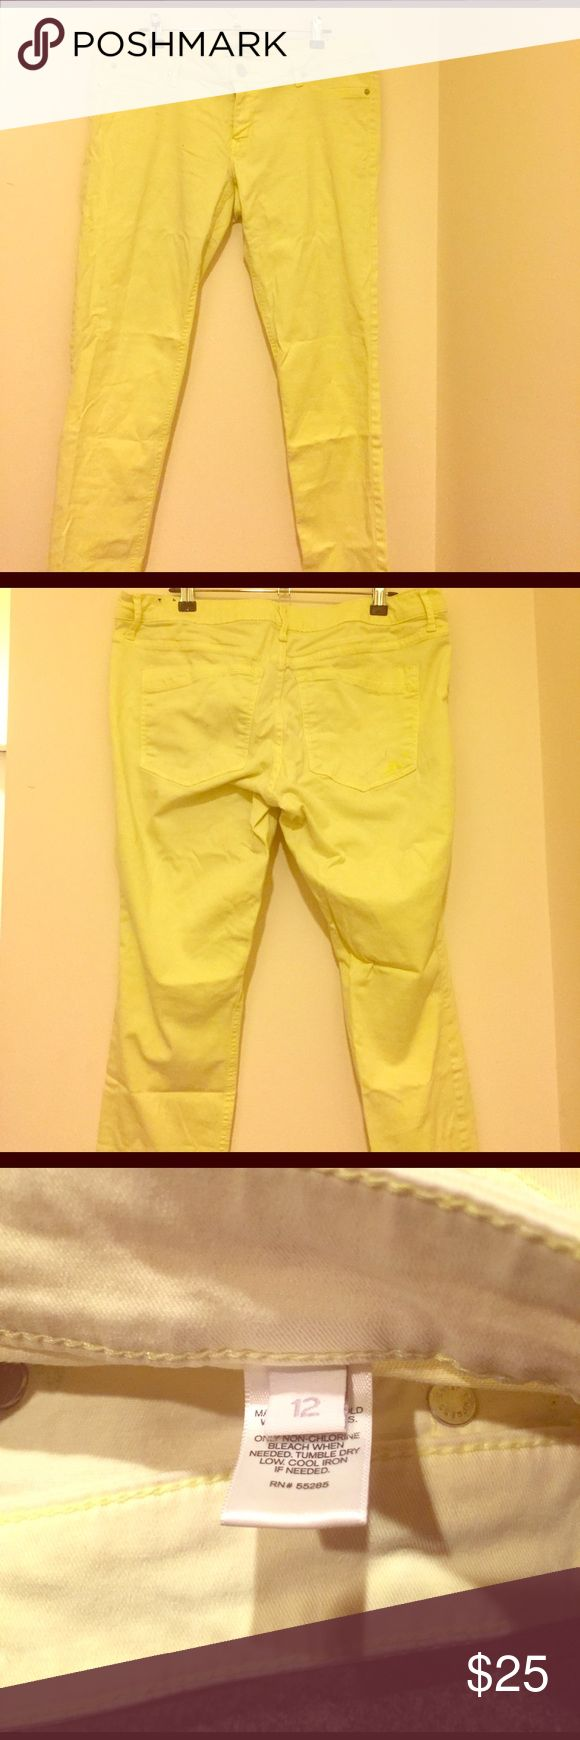 Express Neon Yellow Skinny Jeans Neon yellow Express Skinny Jeans please see back pocket discoloration. Came from keeping my wallet in my pockets and not a purse. Express Jeans Skinny